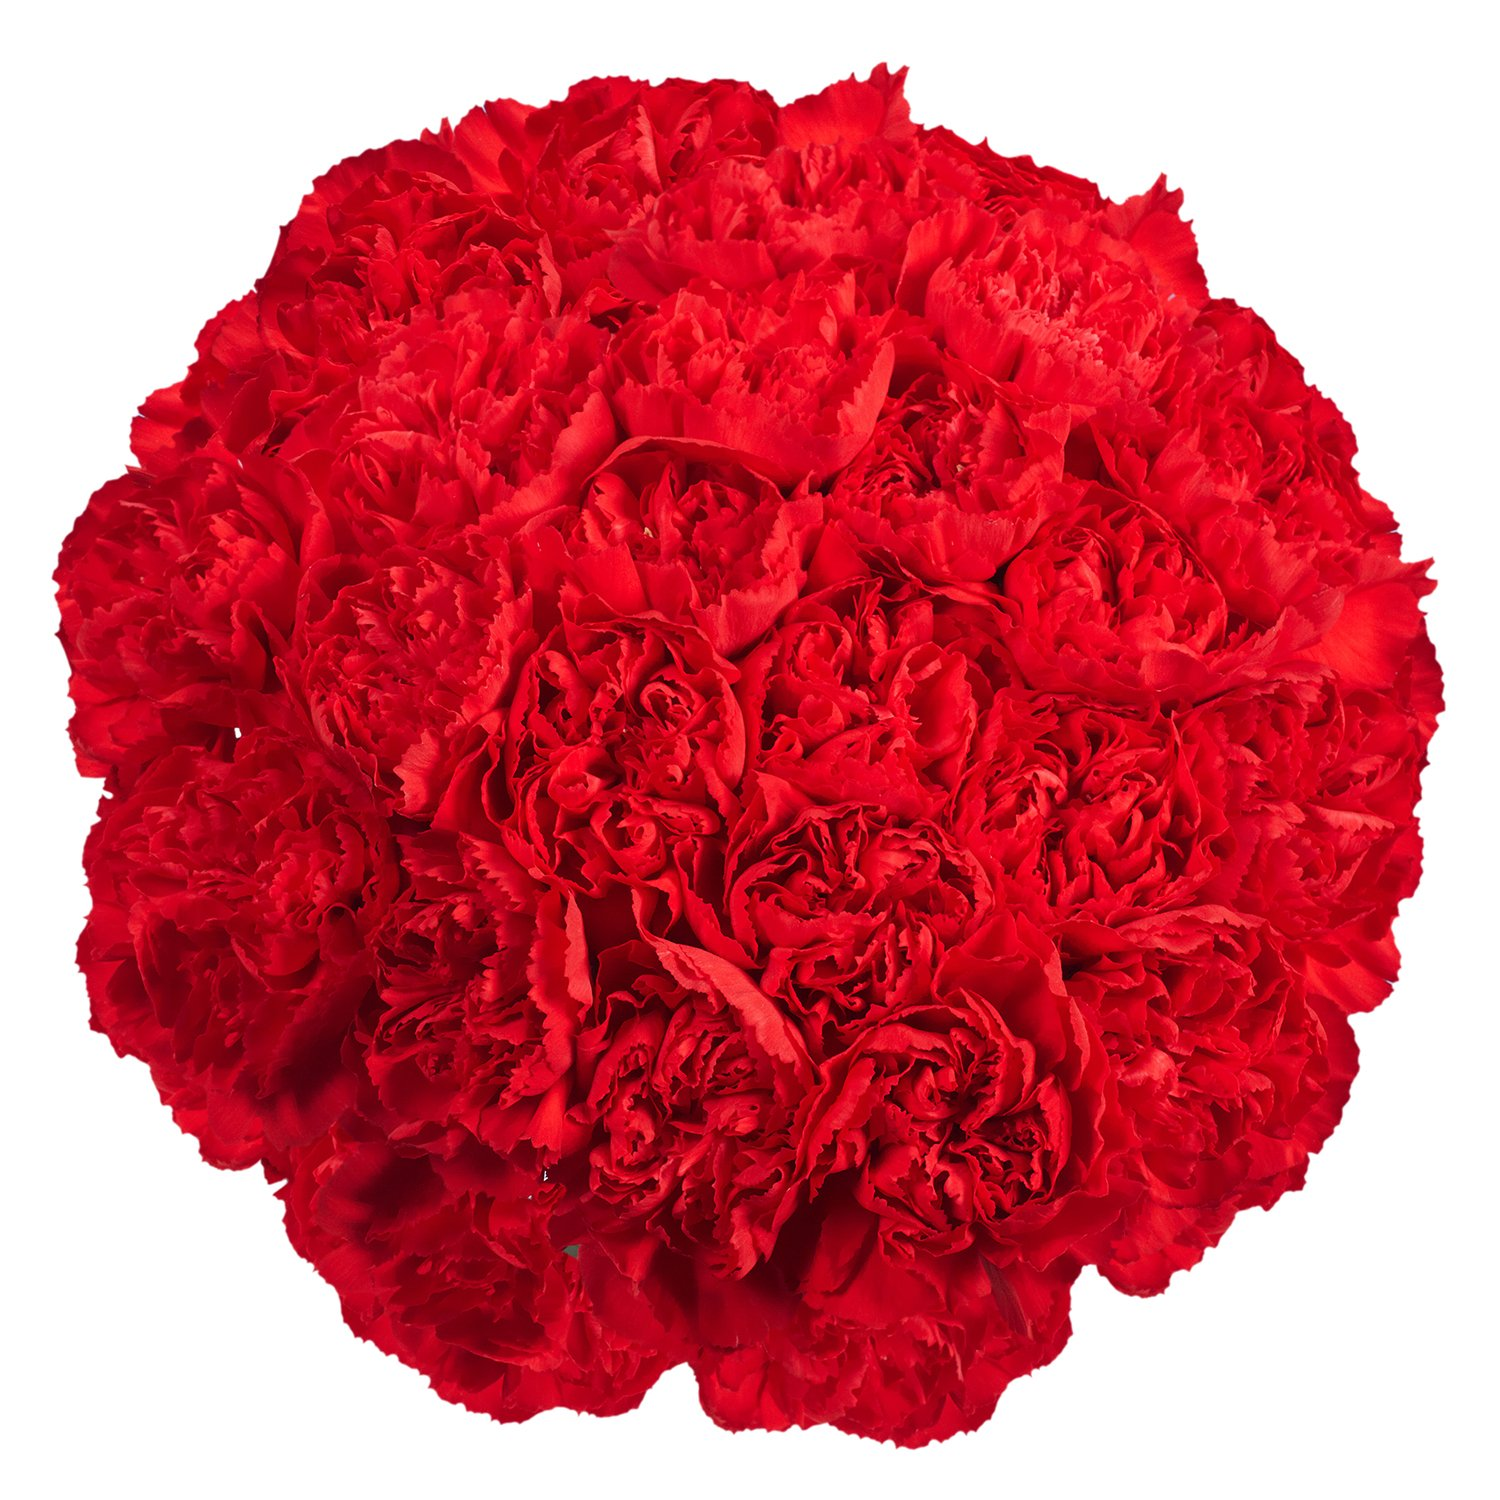 GlobalRose 200 Fresh Cut Red Carnations - Fresh Flowers Wholesale- Express Delivery